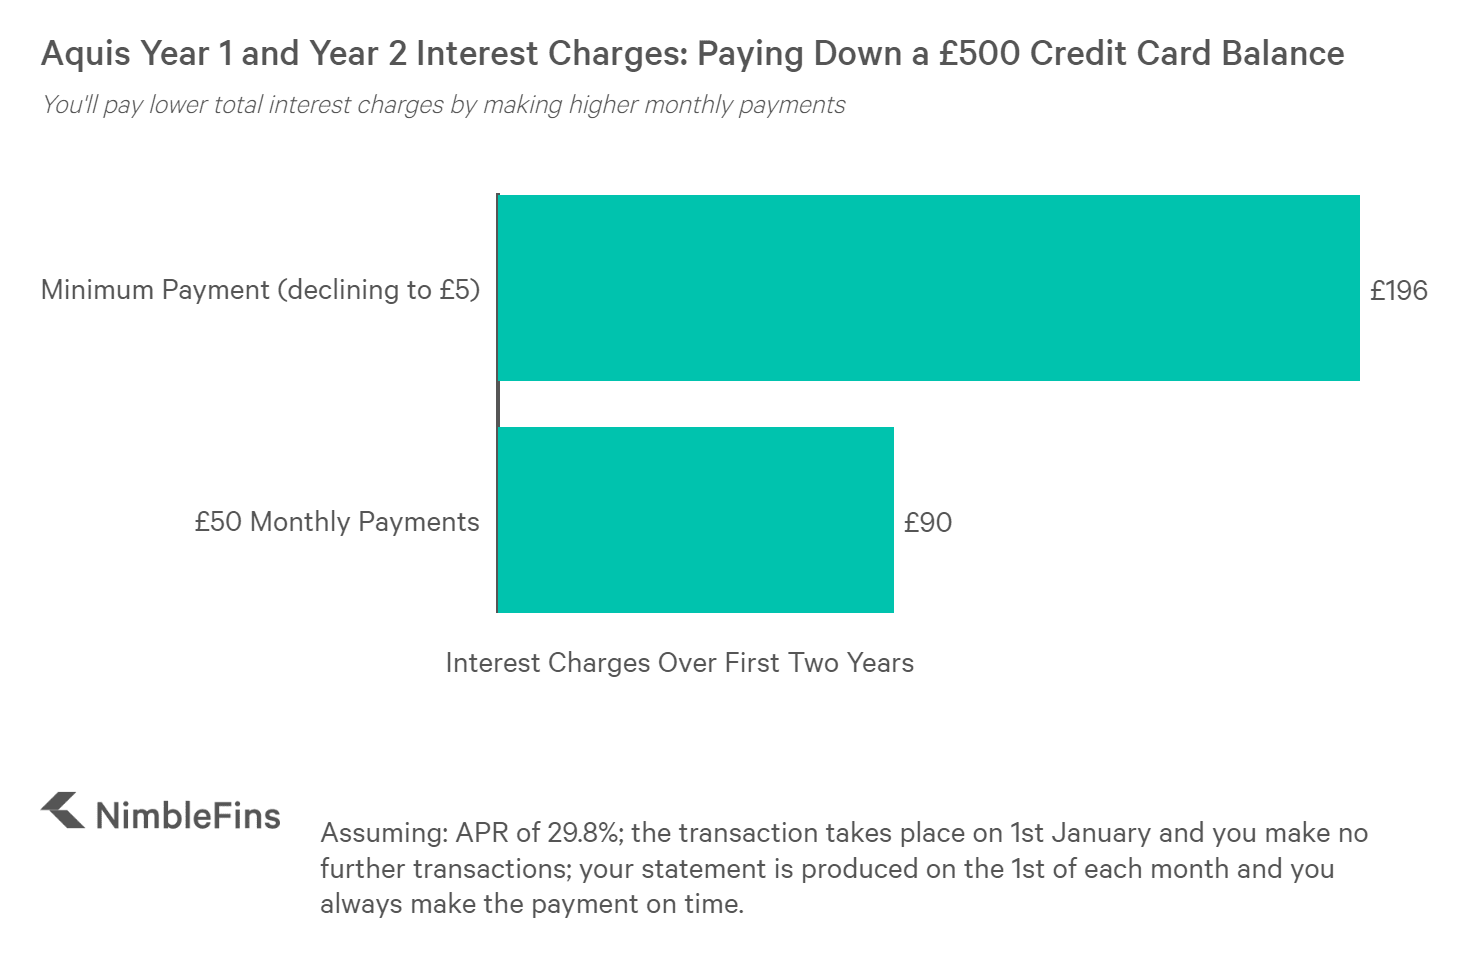 chart showing total interest charges paid while paying down a £500 credit card debt on the Aquis credit card with minimum monthly payments and higher monthly payments